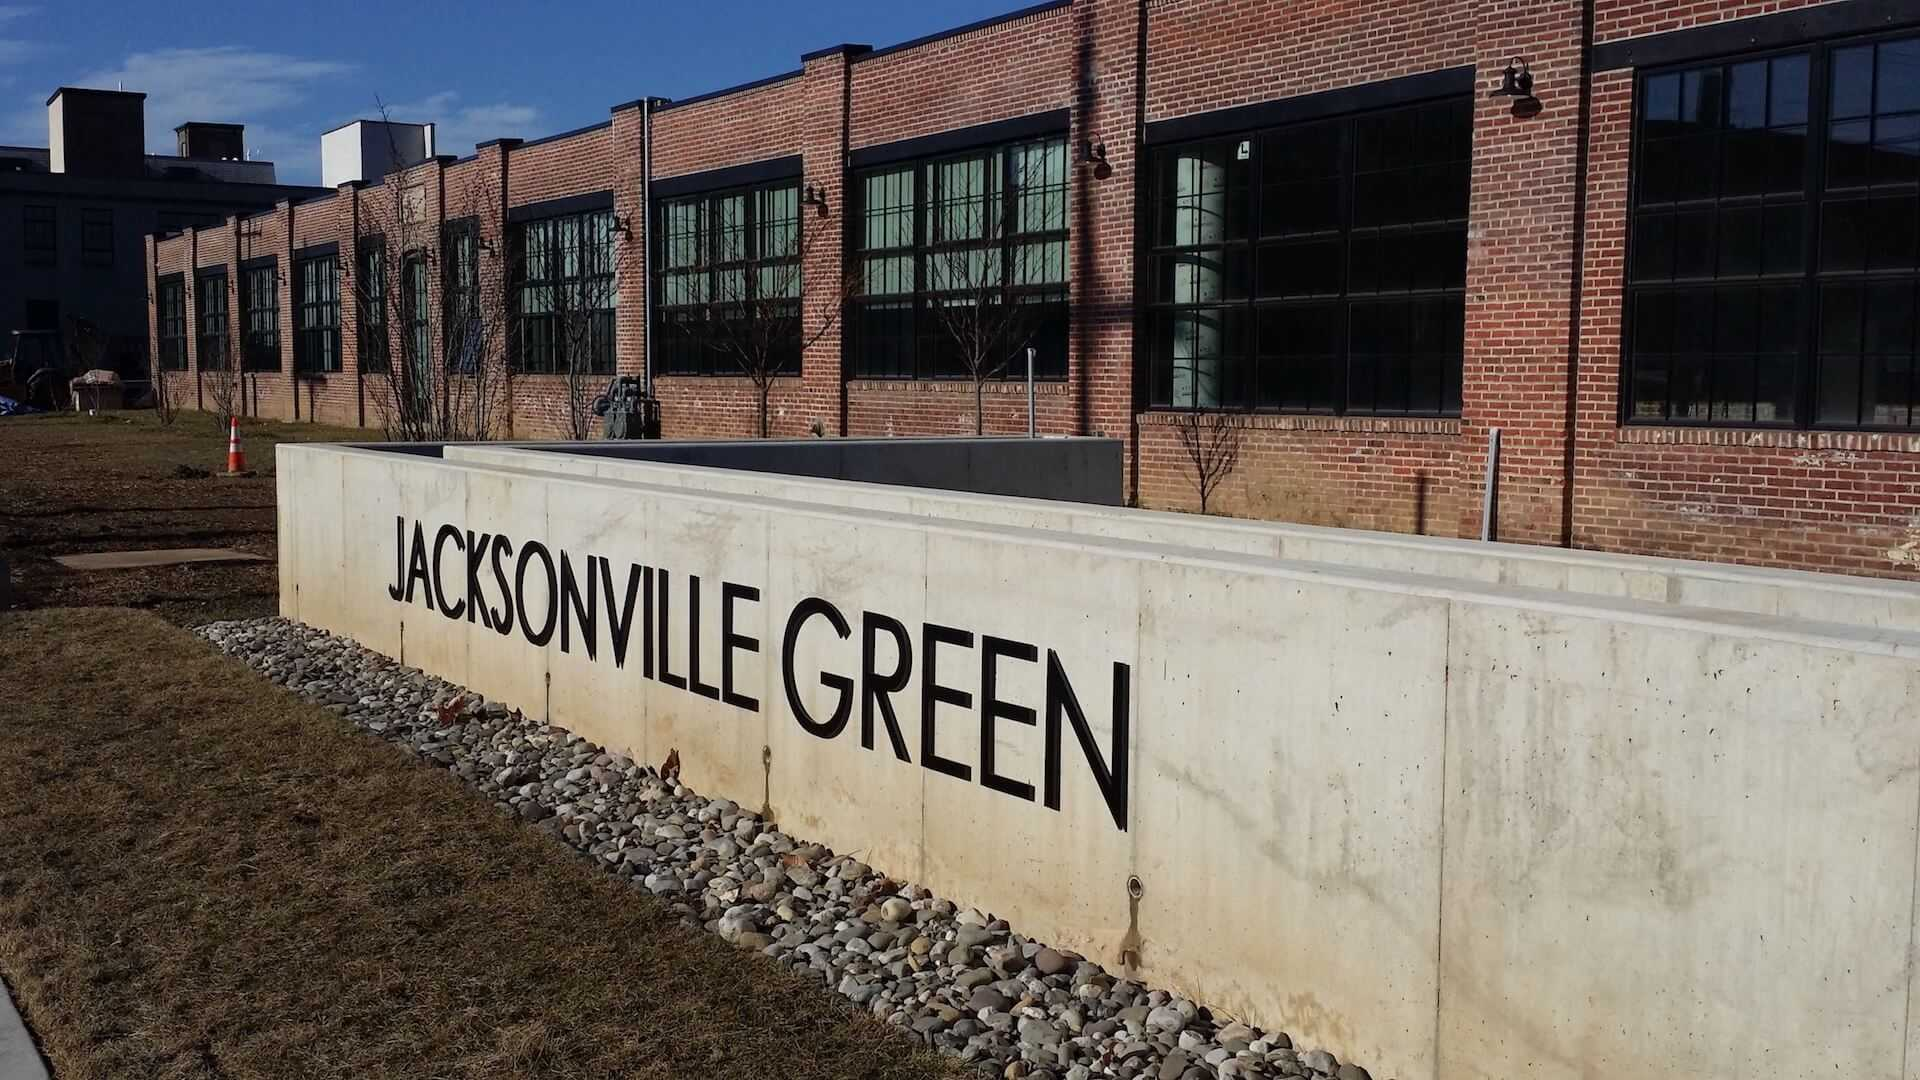 long concrete wall with Jacksonville Green on it